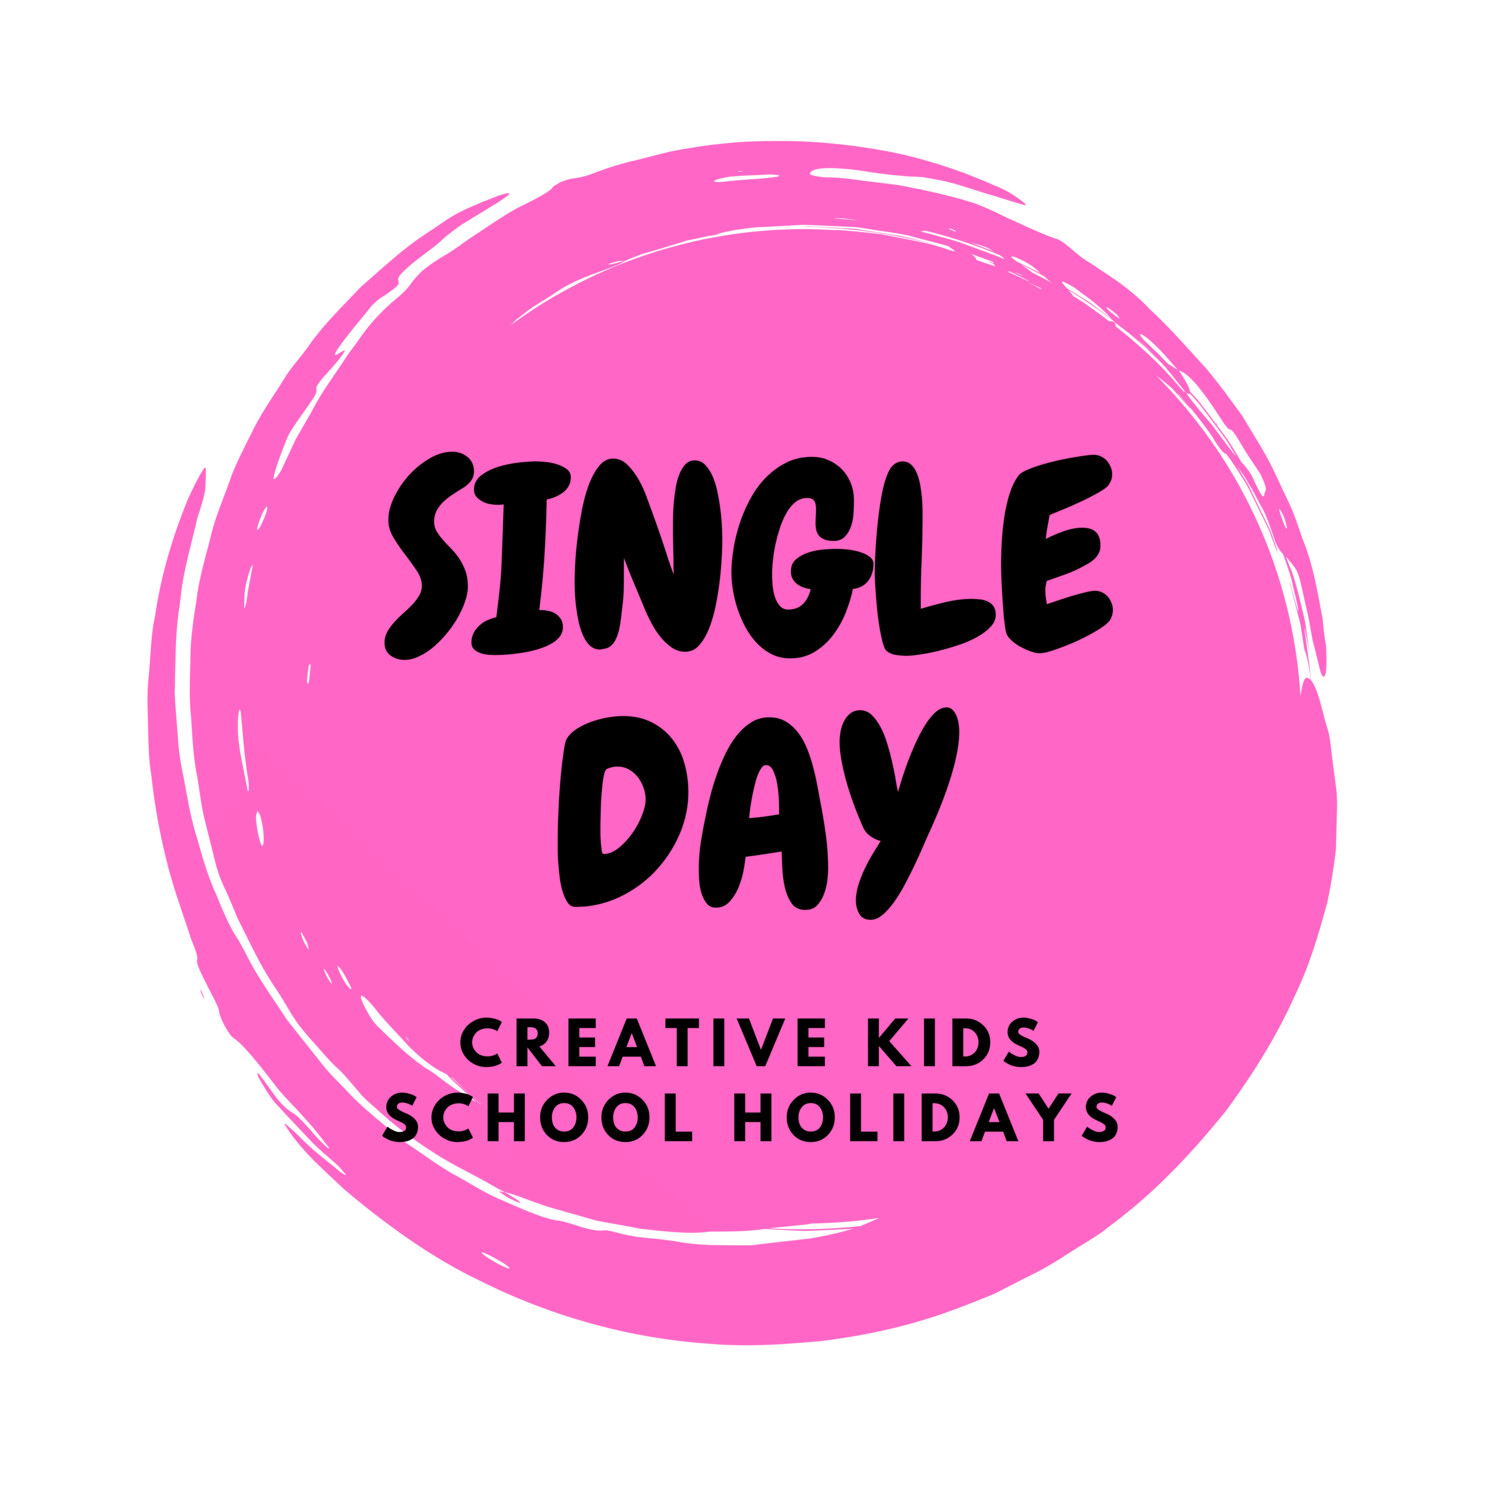 OPPOSITE- Autumn School Holidays Creative Kids - Single Day